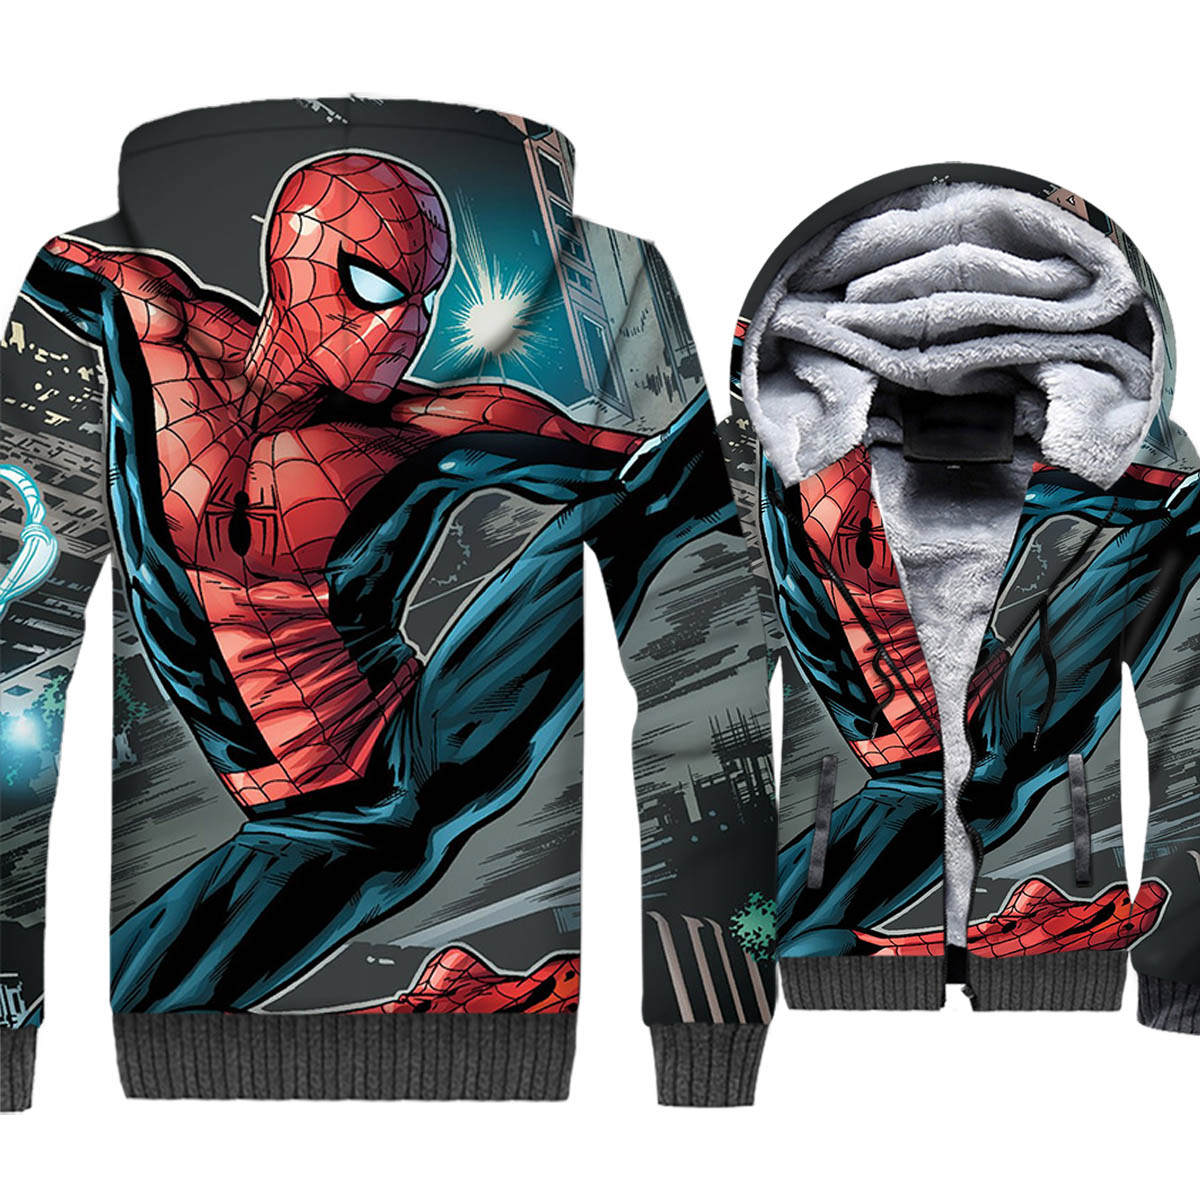 2019 New Arrival Cool Fashion Spiderman 3D printed Thick Hoodies Men's Harajuku Sweatshirts Hip Hop Spring Autumn Streetwear Man